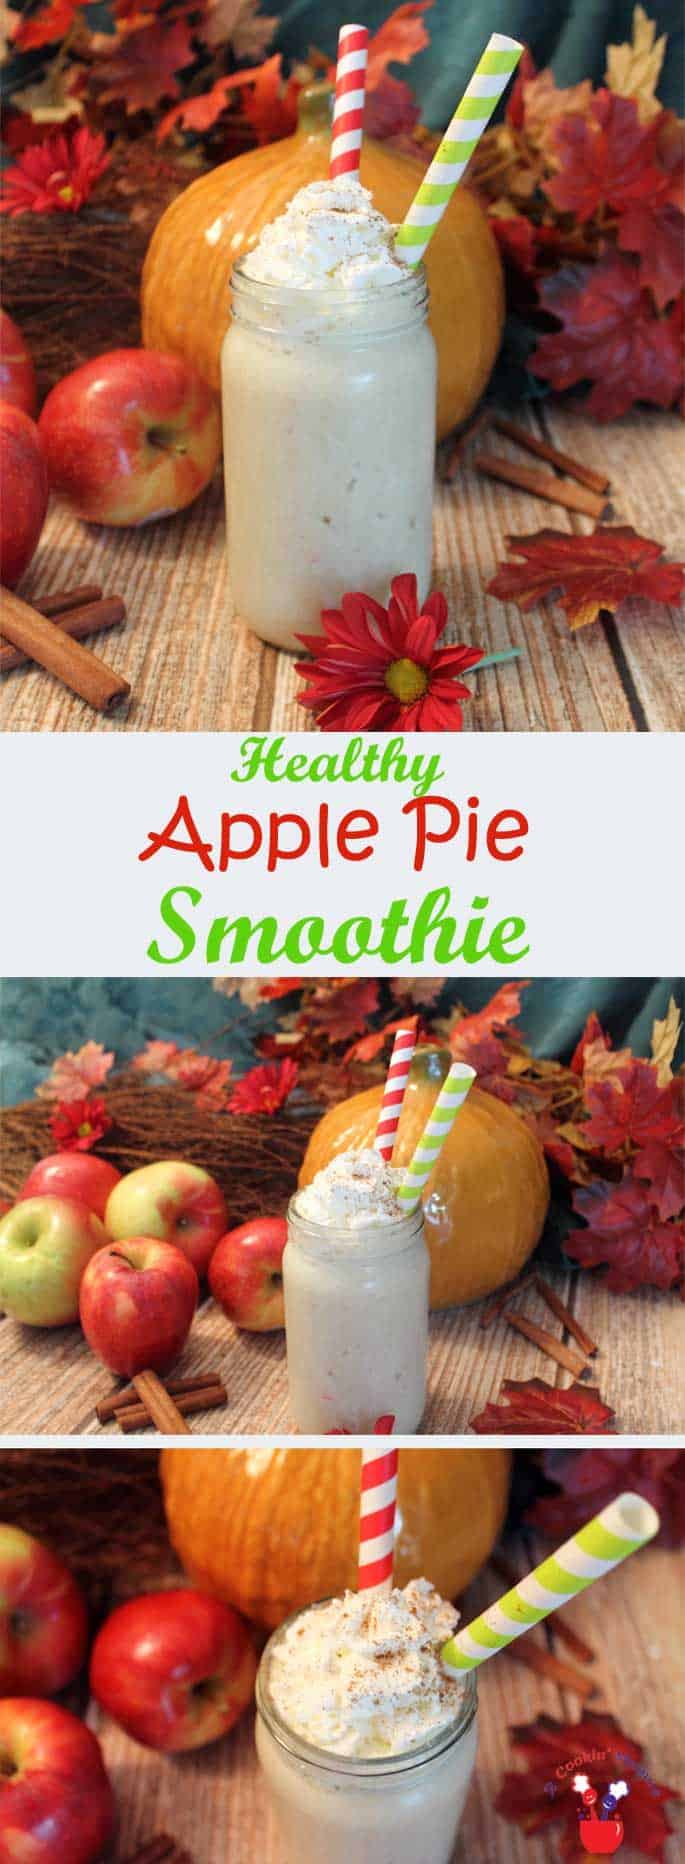 Apple Pie Smoothie | 2 Cookin Mamas This apple pie smoothie is like apple pie in a glass. Now you don't have to feel guilty - go ahead and have this healthy smoothie for breakfast or lunch.